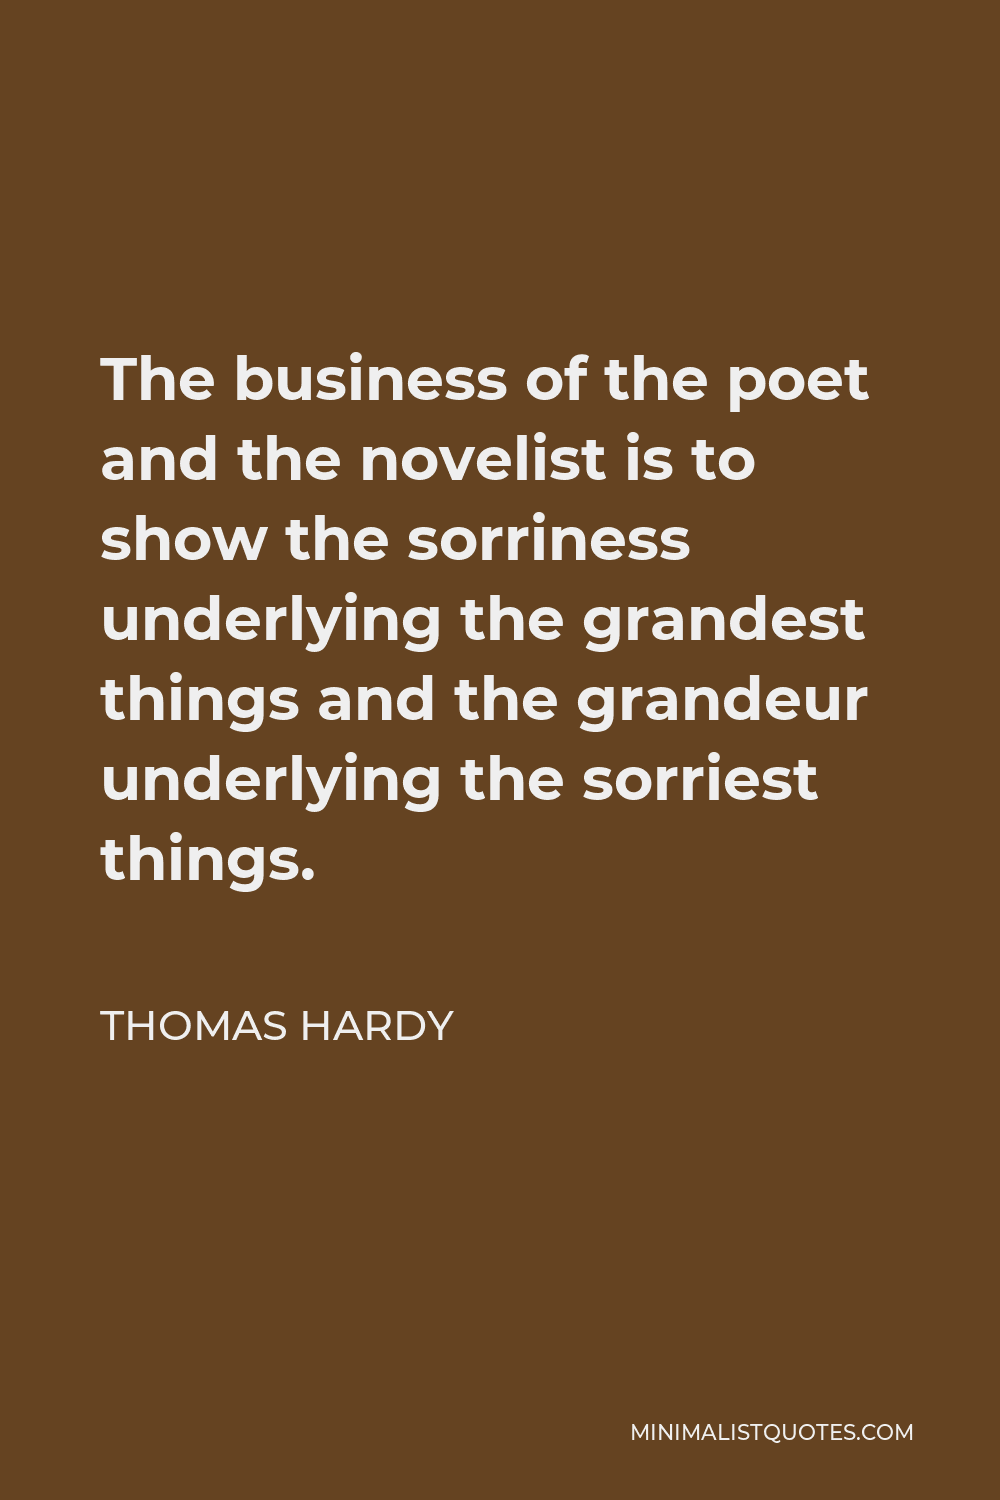 Thomas Hardy Quote - The business of the poet and the novelist is to show the sorriness underlying the grandest things and the grandeur underlying the sorriest things.